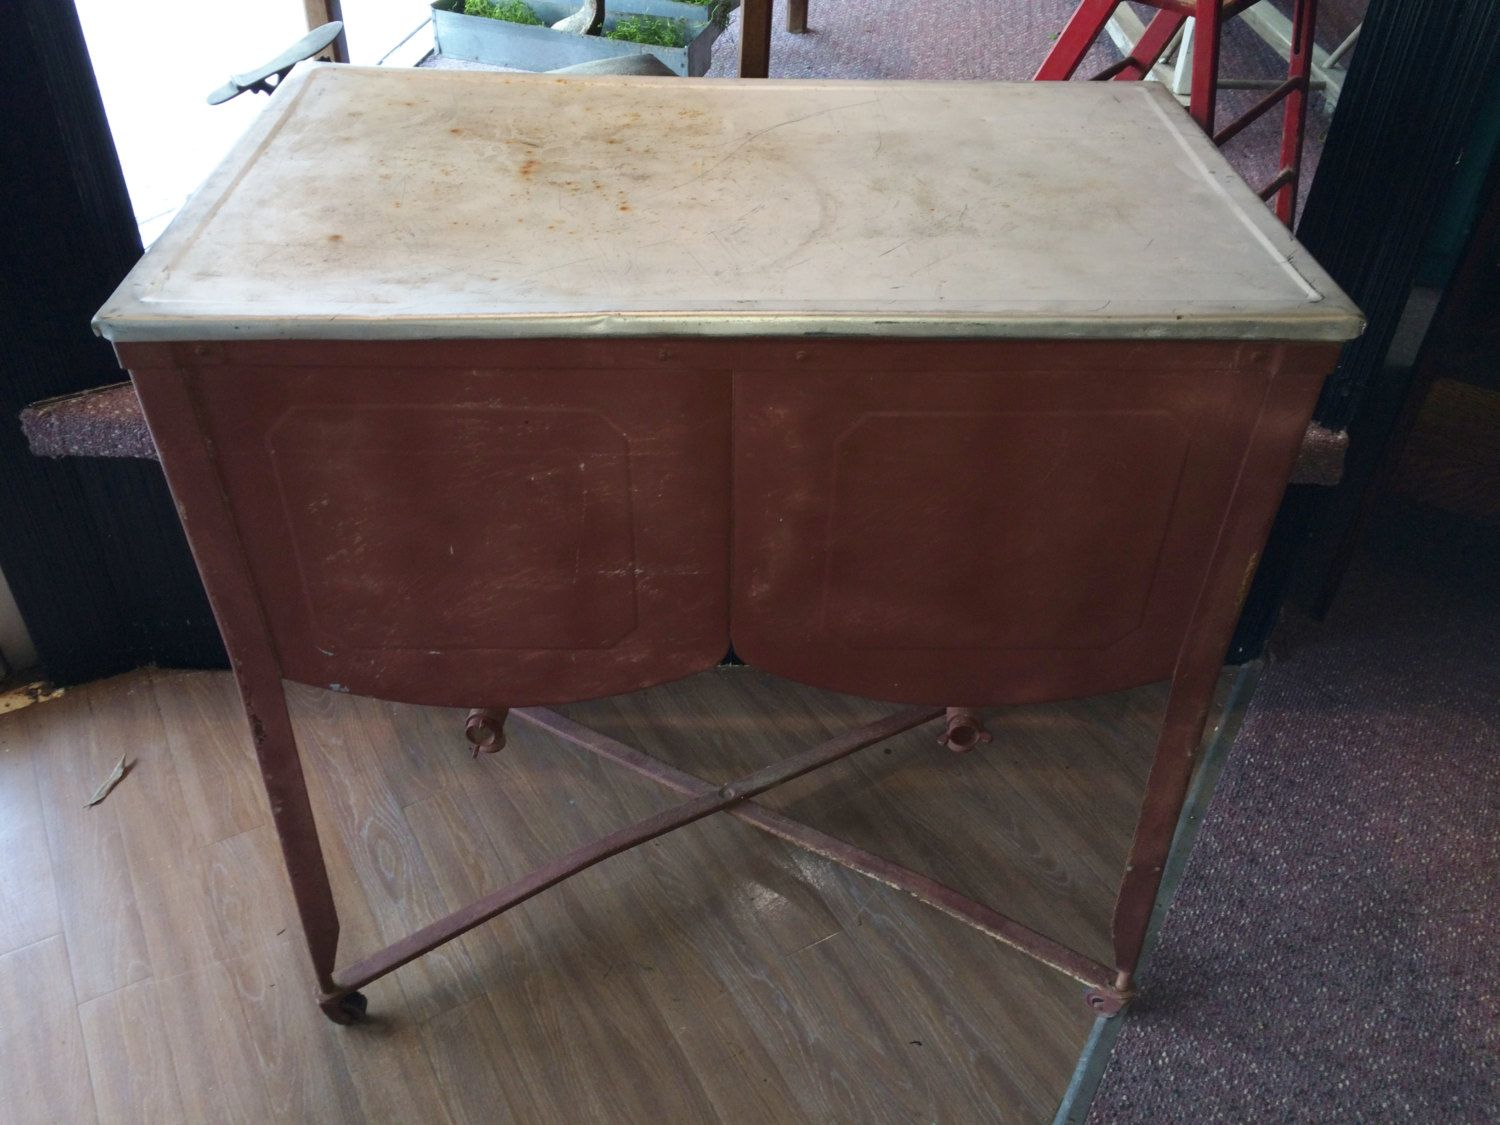 Metal Wash Bin Sale Old Galvanized Double Wash Tub Washtub With Original Lid